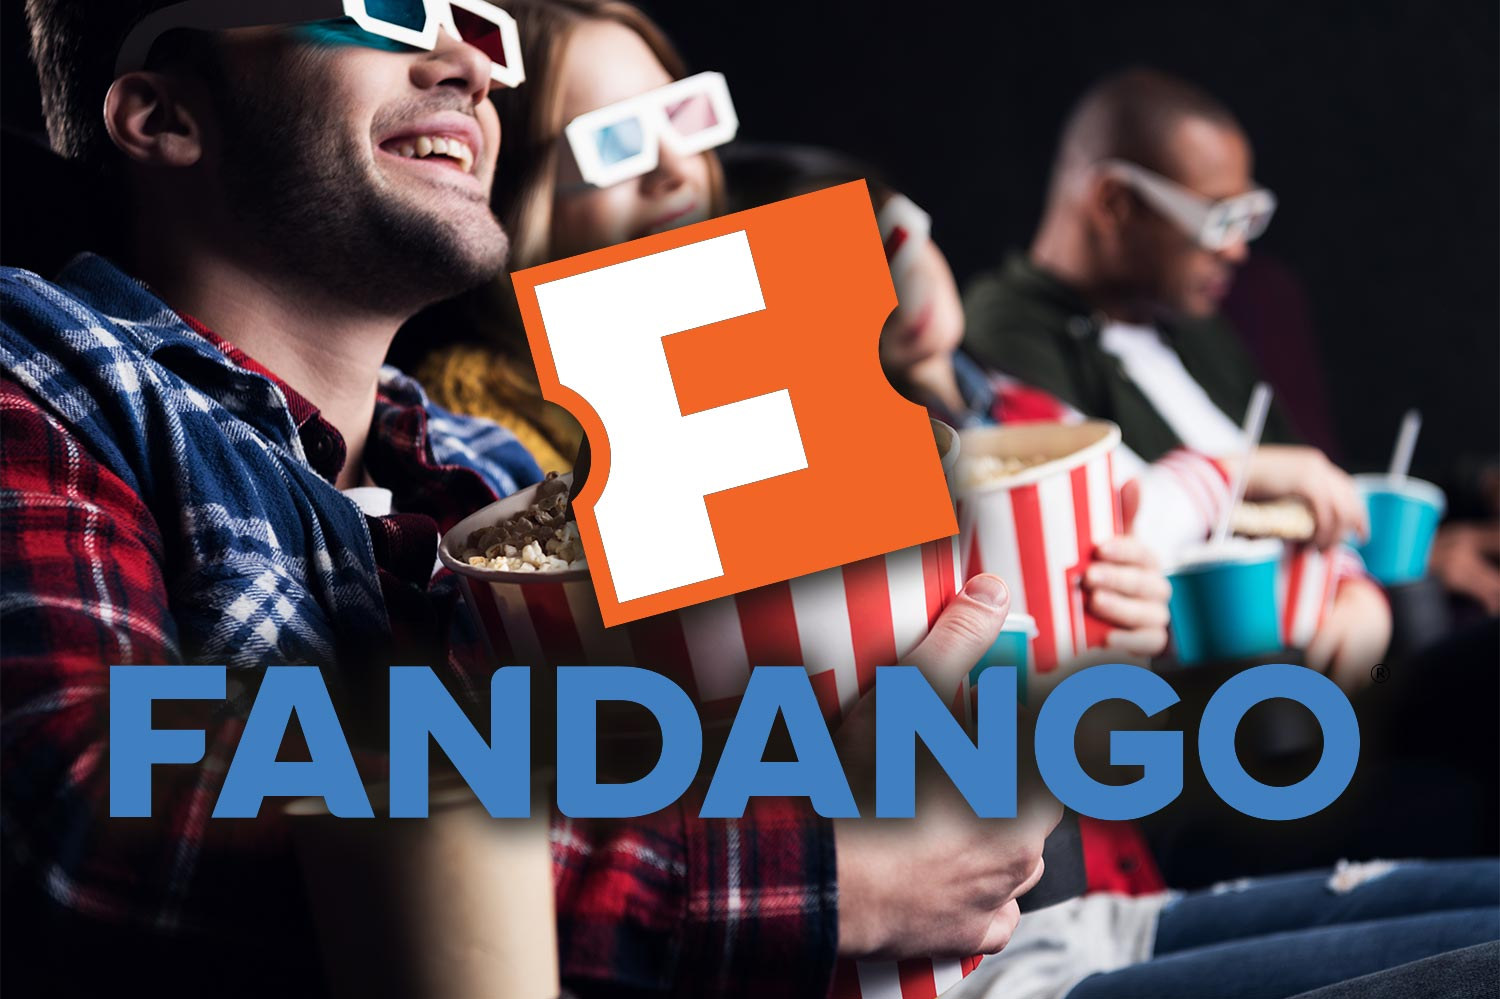 Fandango Movie Theater Locations and Times